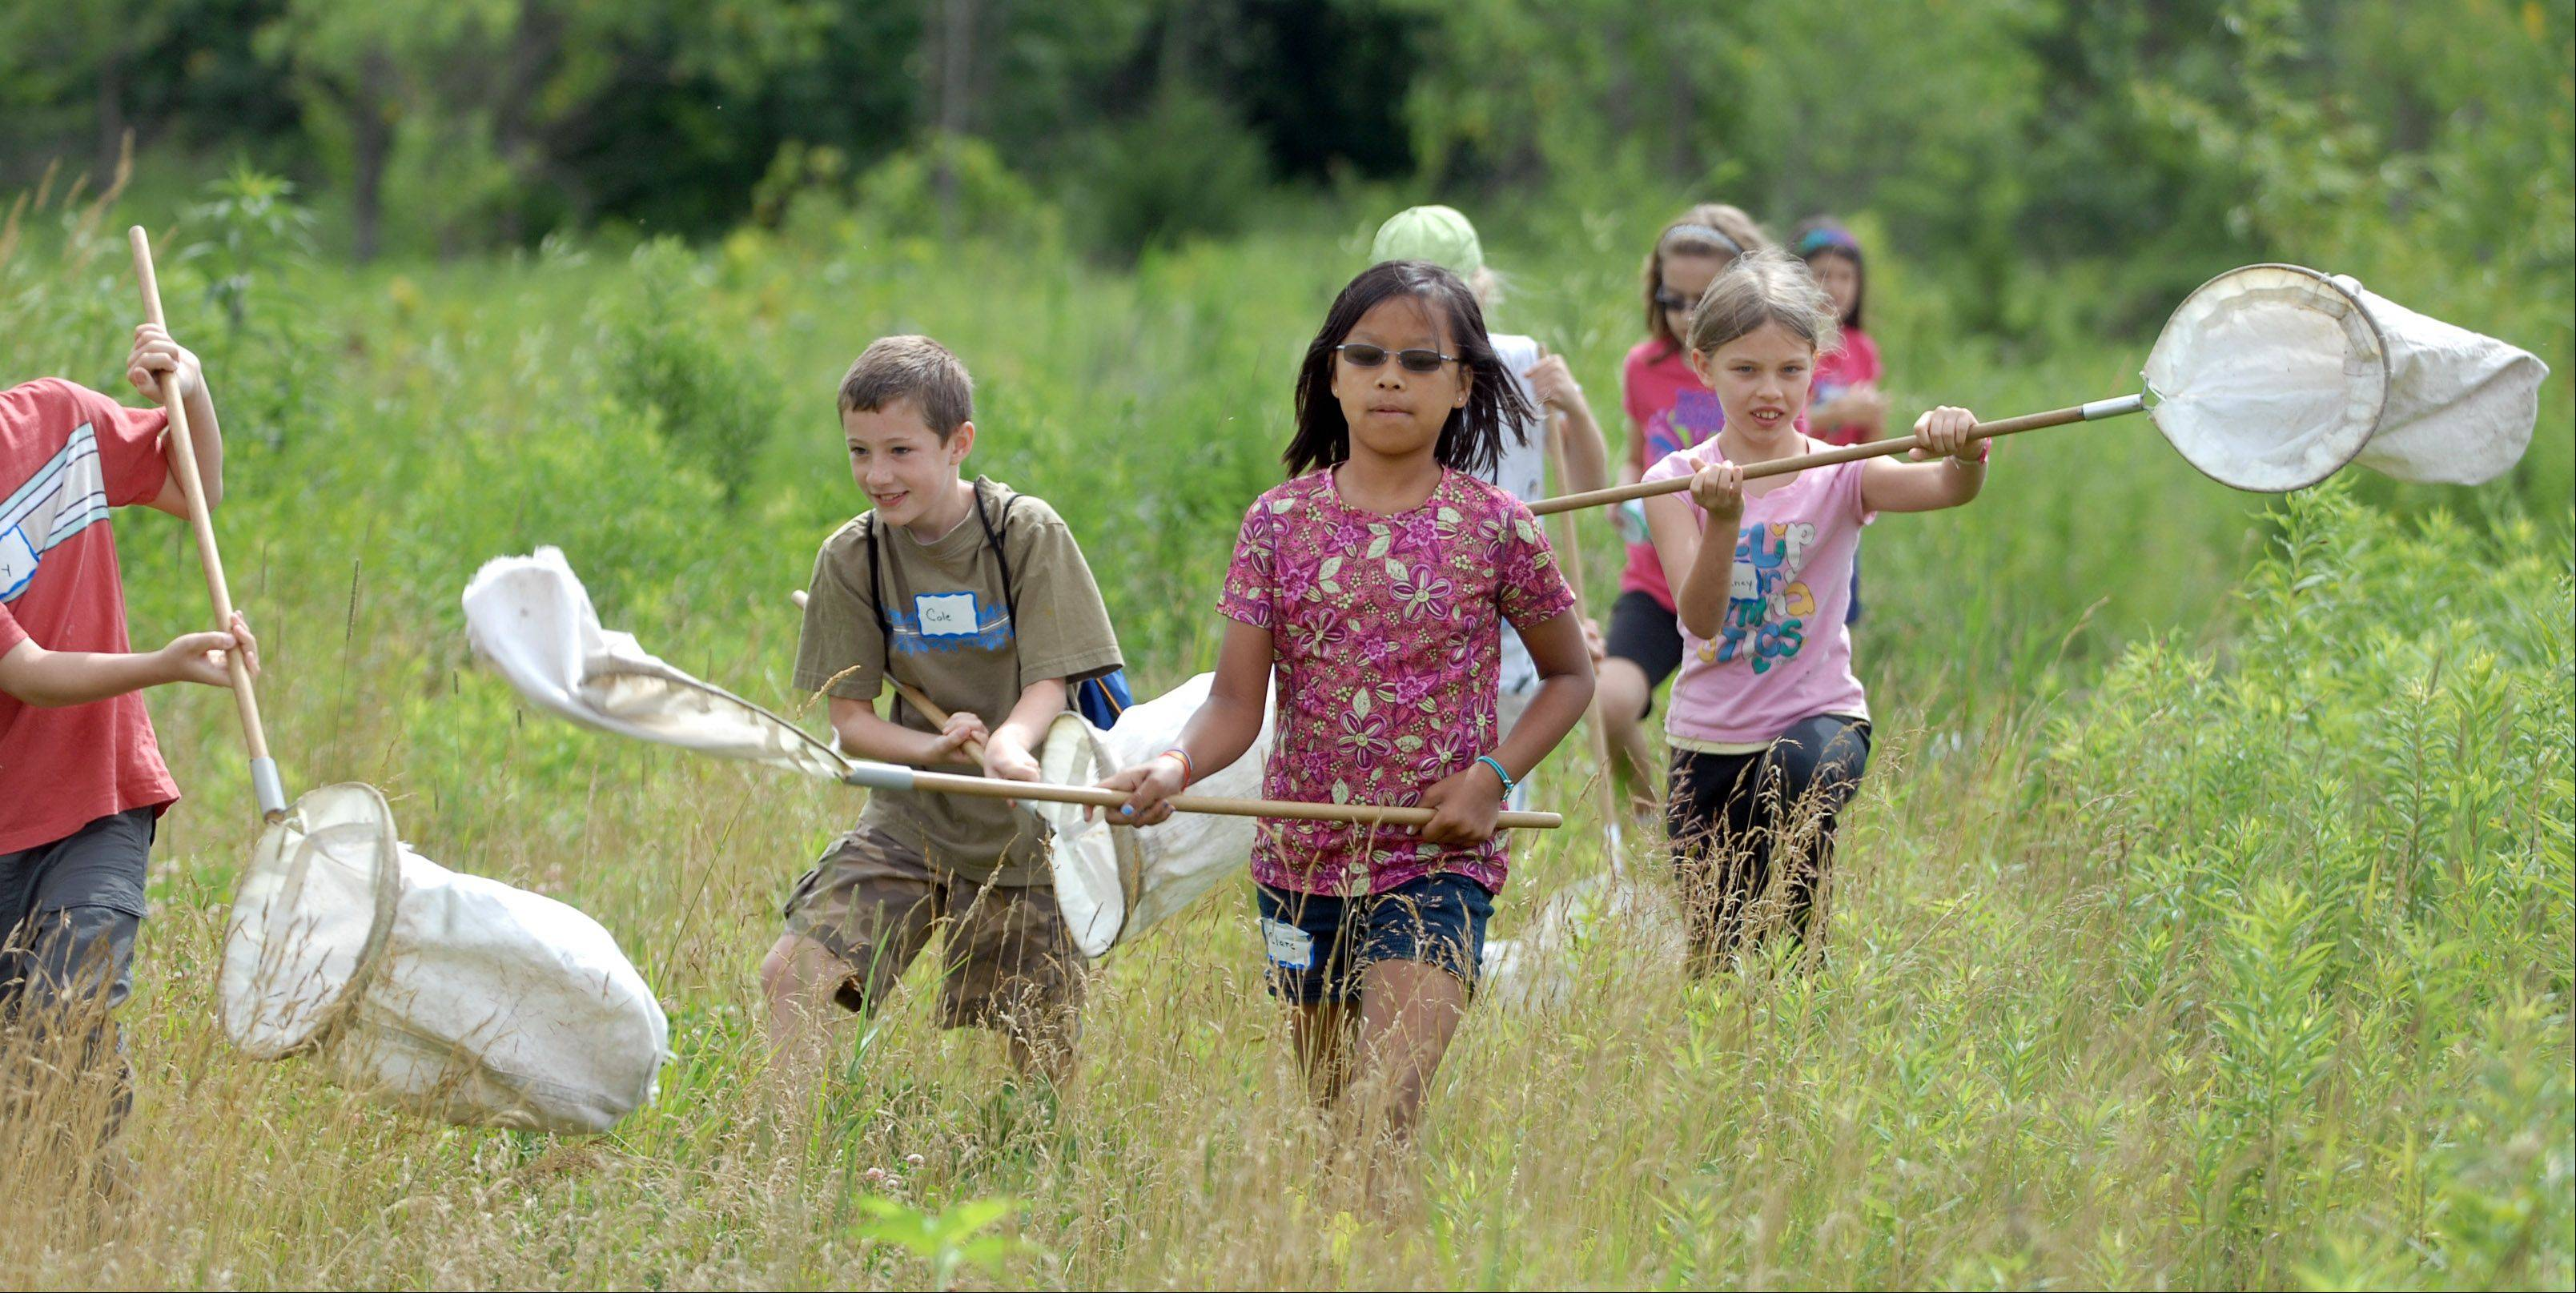 Children in third and fourth grades are participating in the Lake County Forest Preserve's Eco Adventurers Camp at Heron Creek Forest Preserve near Long Grove this week. Wednesday, the kids swept a field with nets trying to catch spiders to study.